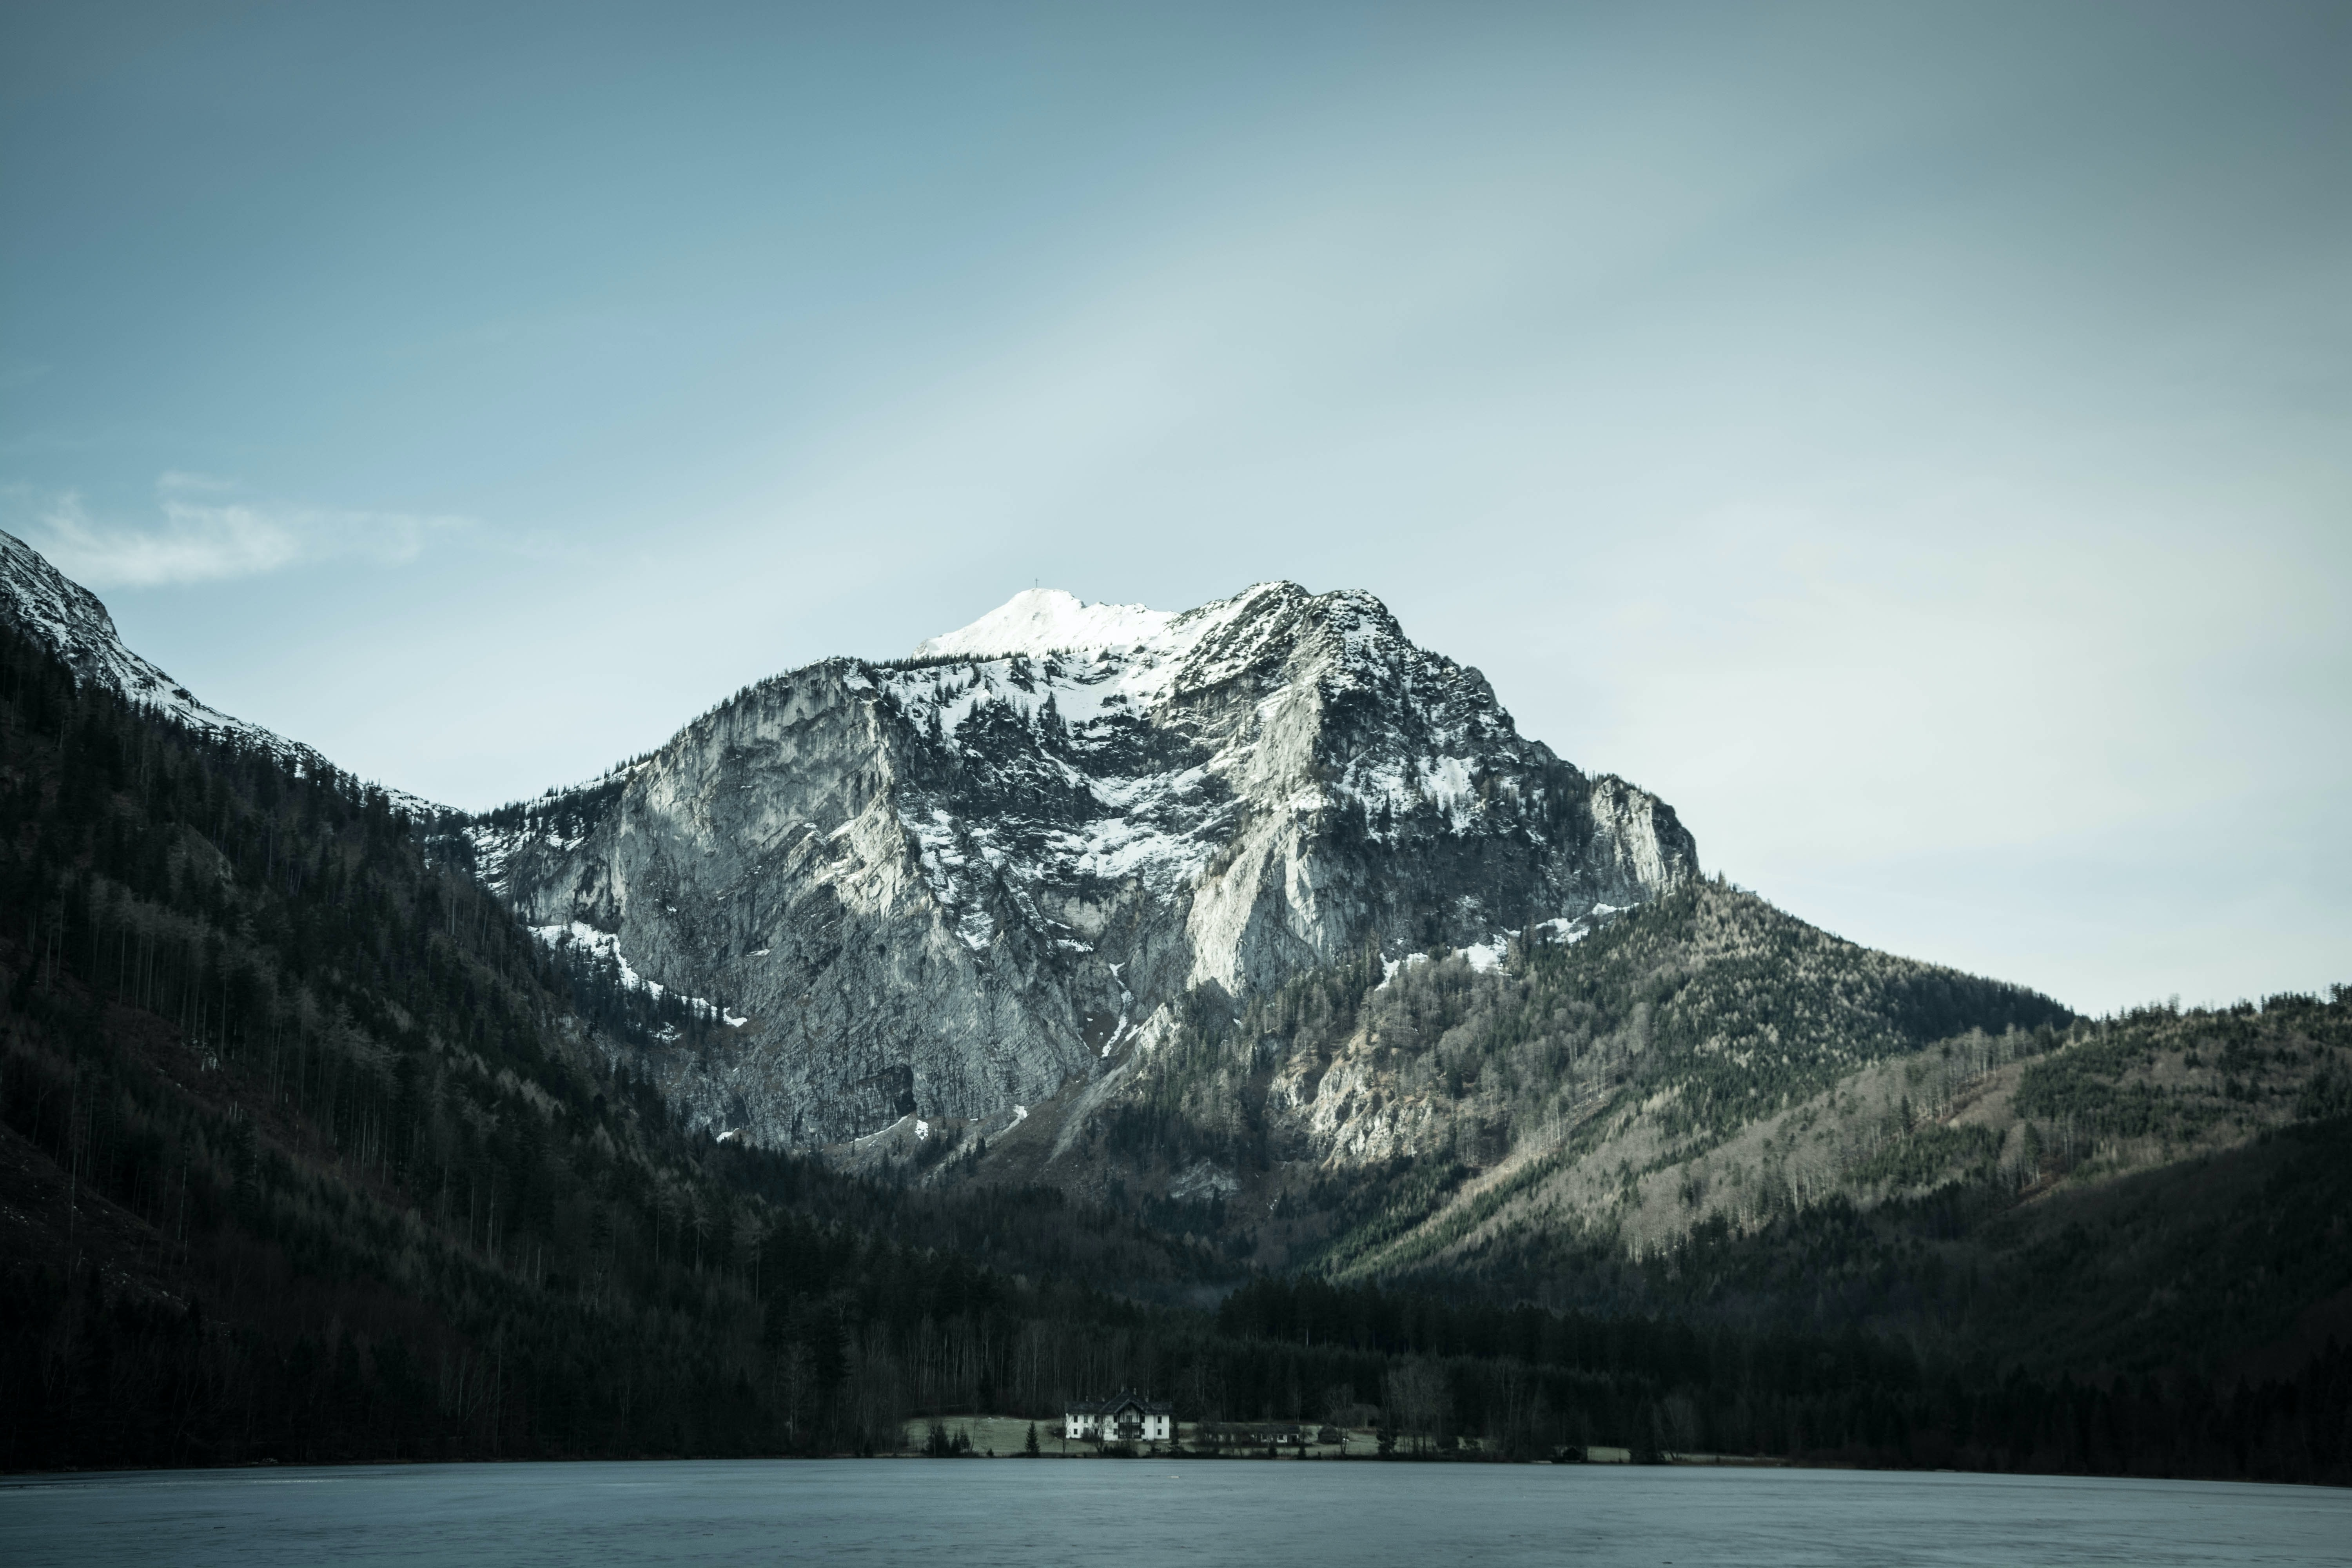 snow-covered mountain near body of water